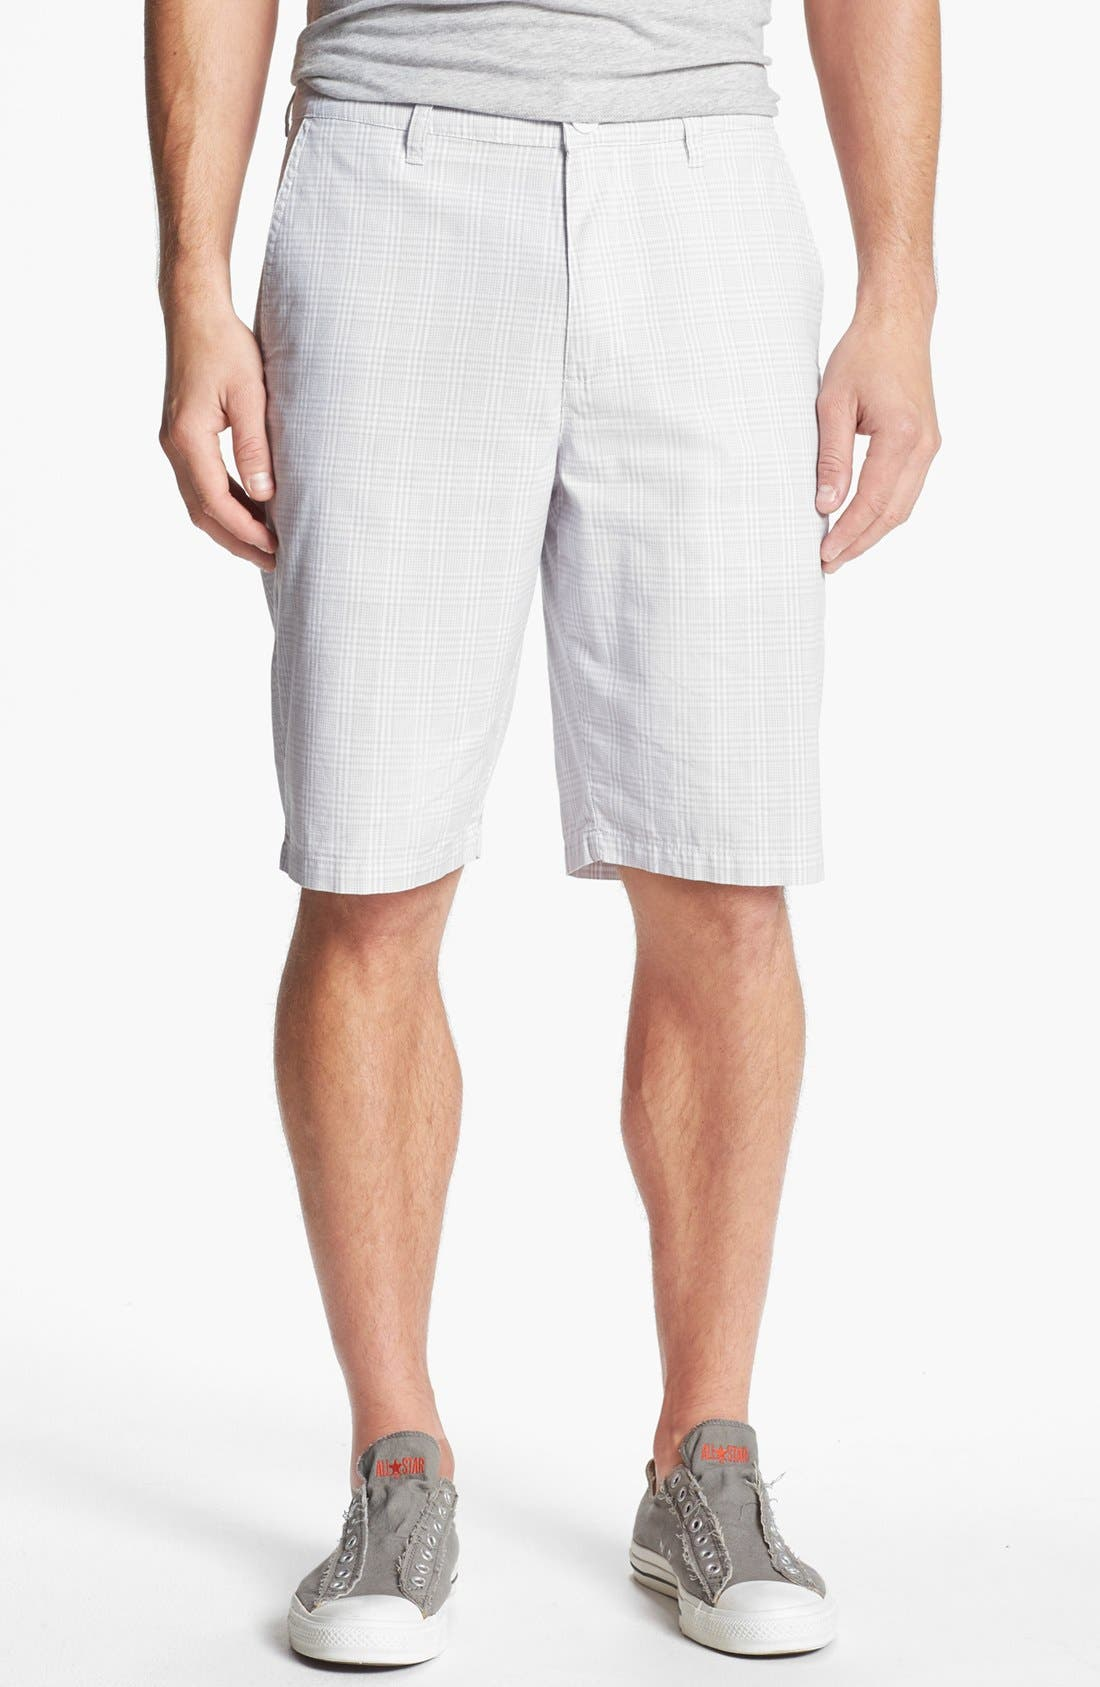 Alternate Image 1 Selected - Quiksilver 'Agenda' Shorts